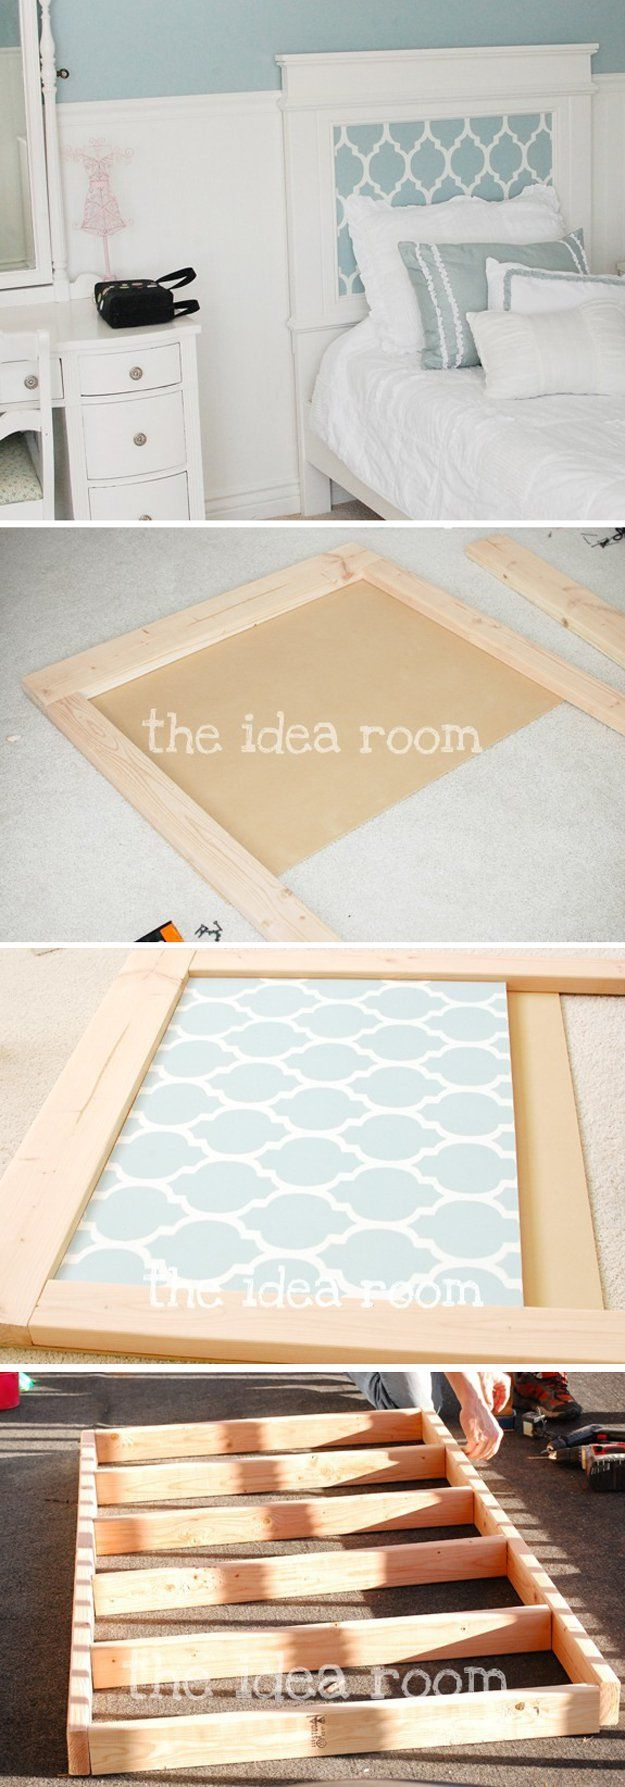 Simple DIY Wooden Headboard Tutorial | https://diyprojects.com/diy-headboards-for-every-home/